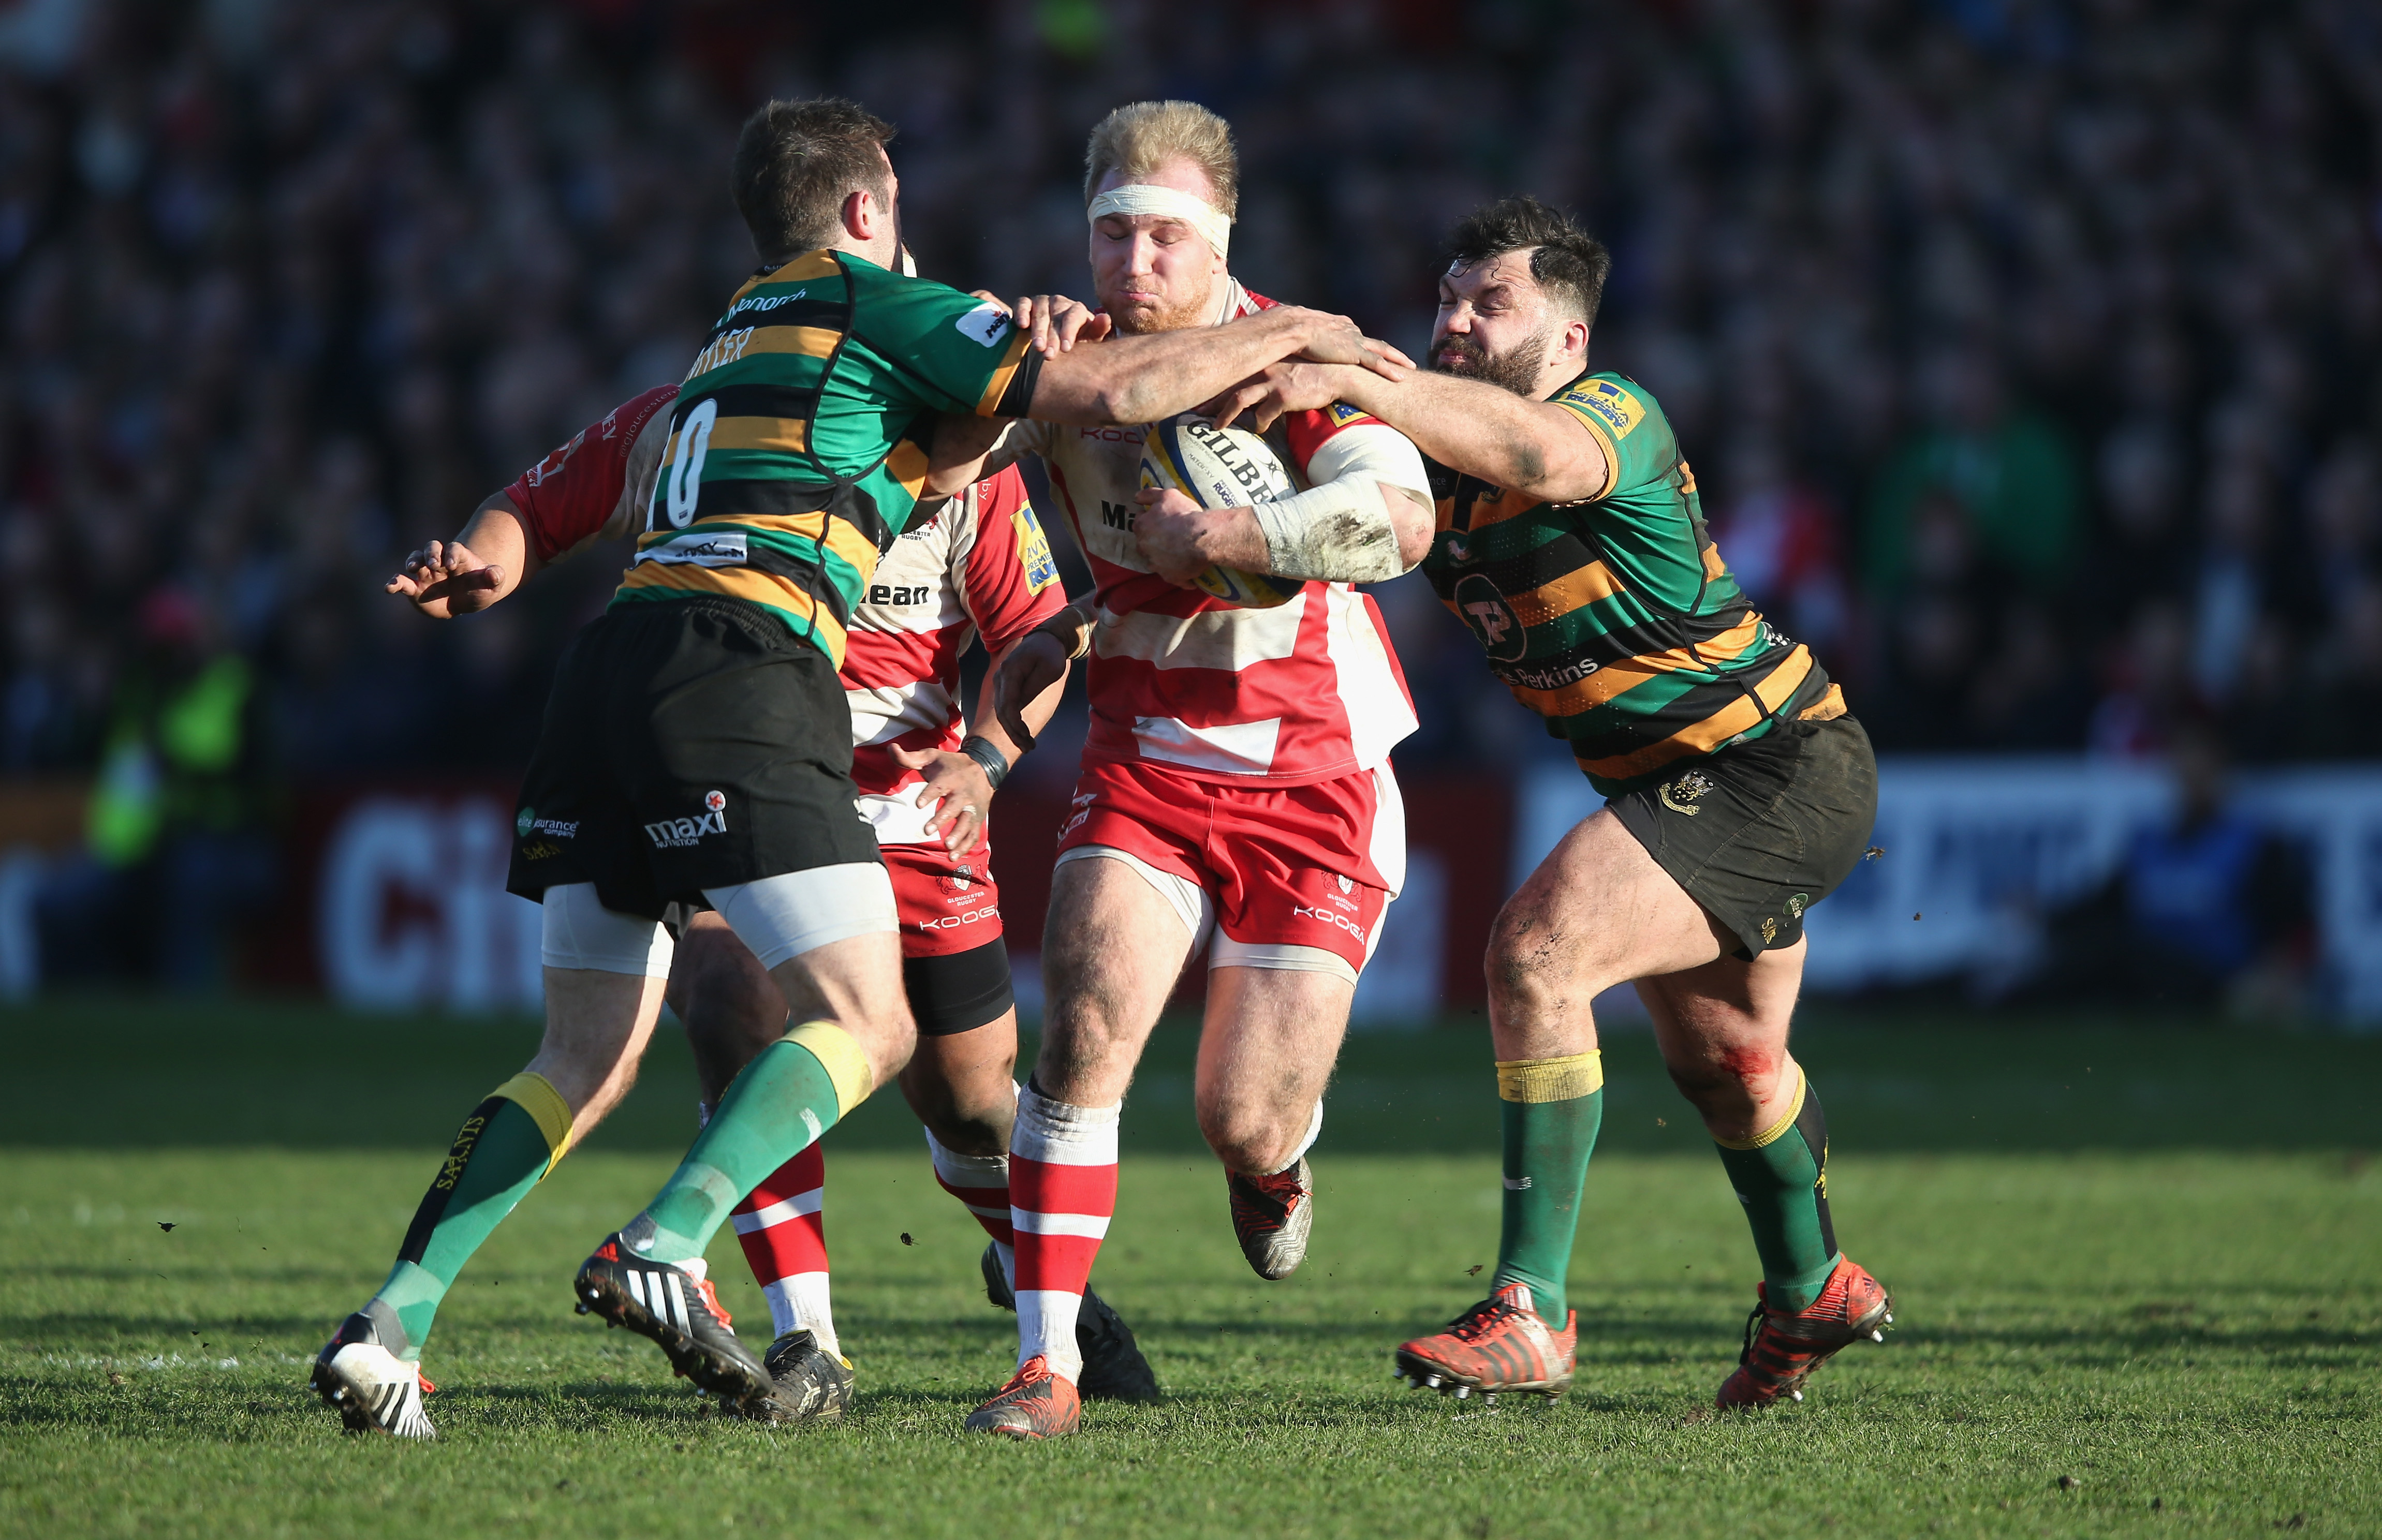 during the Aviva Premiership match between Gloucester and Northampton Saints at Kingsholm Stadium on March 7, 2015 in Gloucester, England.